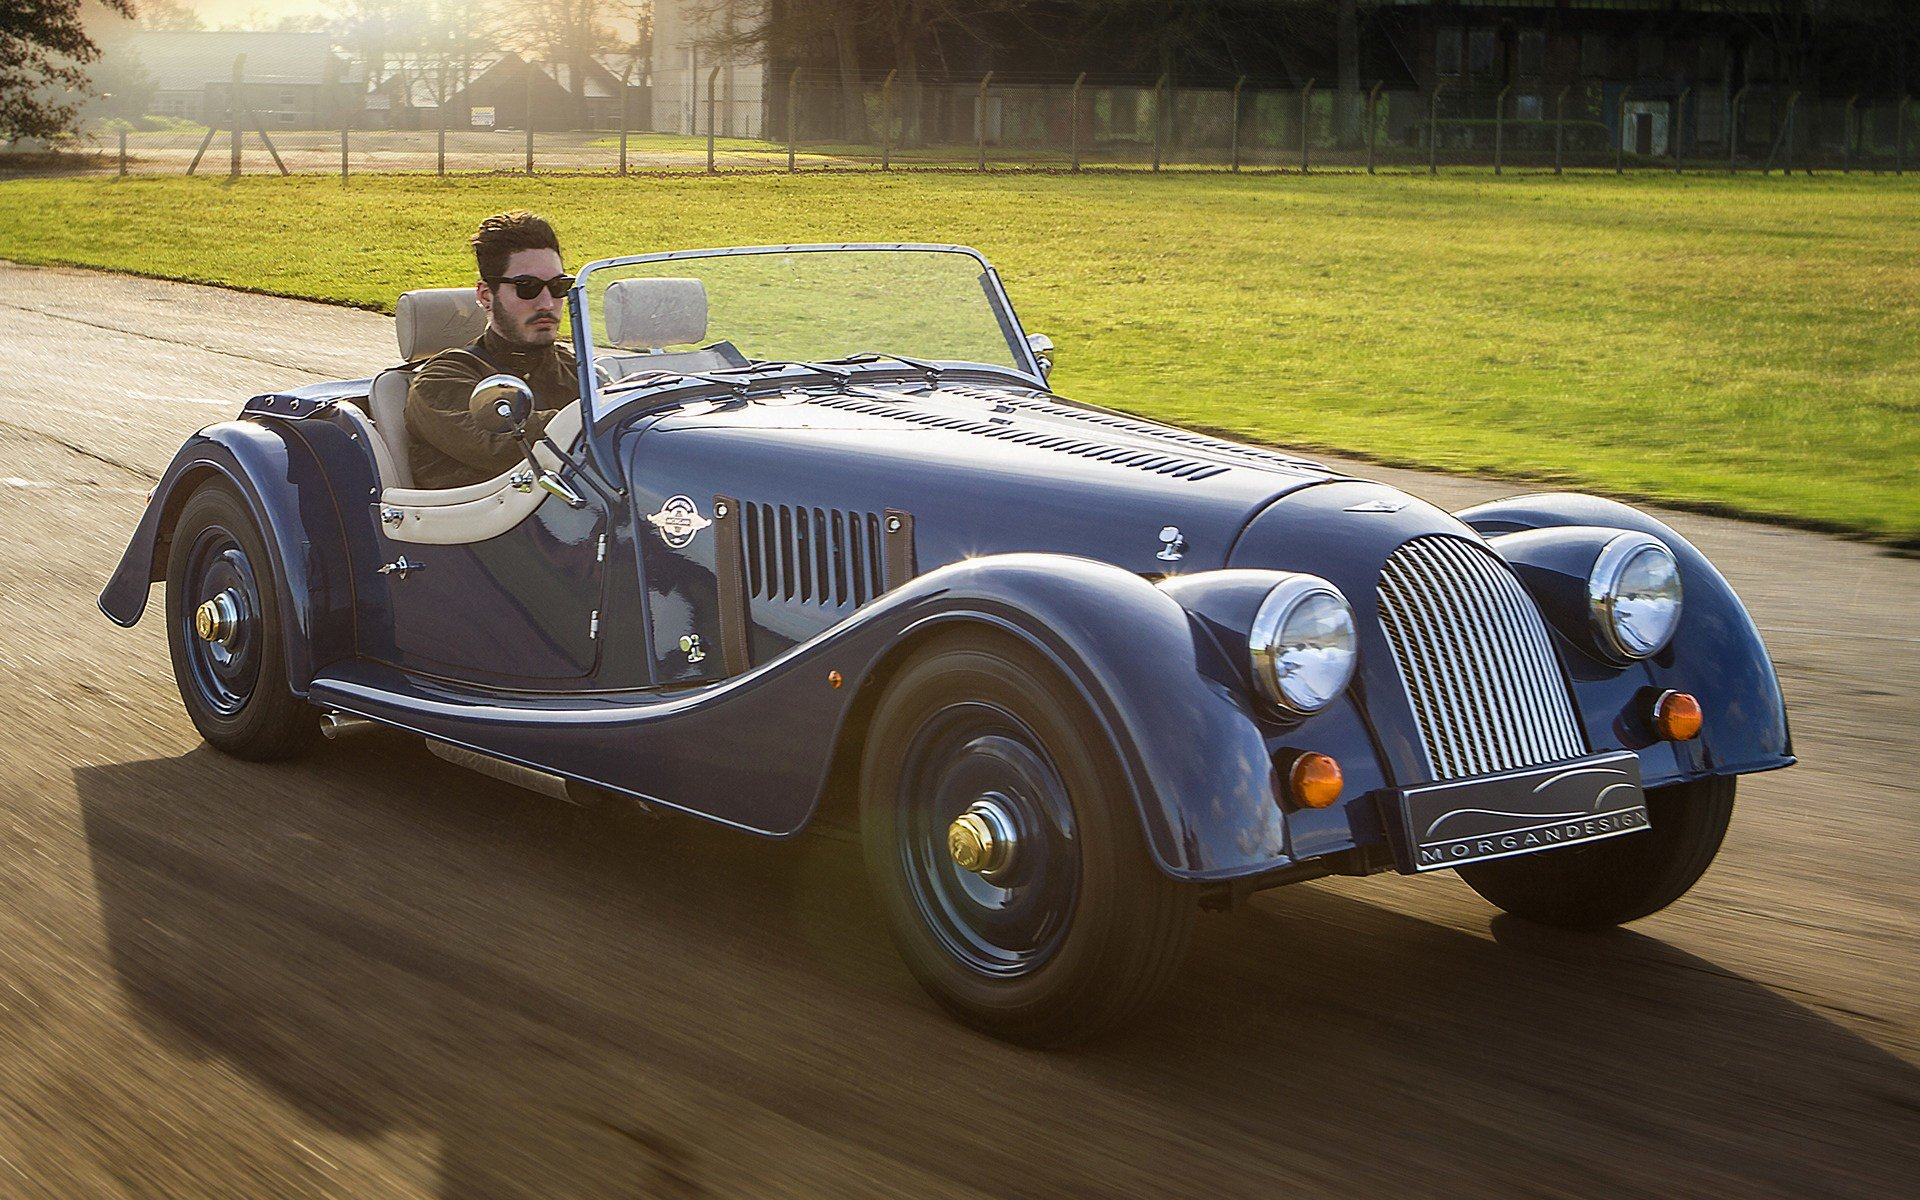 Latest 2016 Morgan 4 4 80Th Anniversary Wallpapers And Hd Free Download